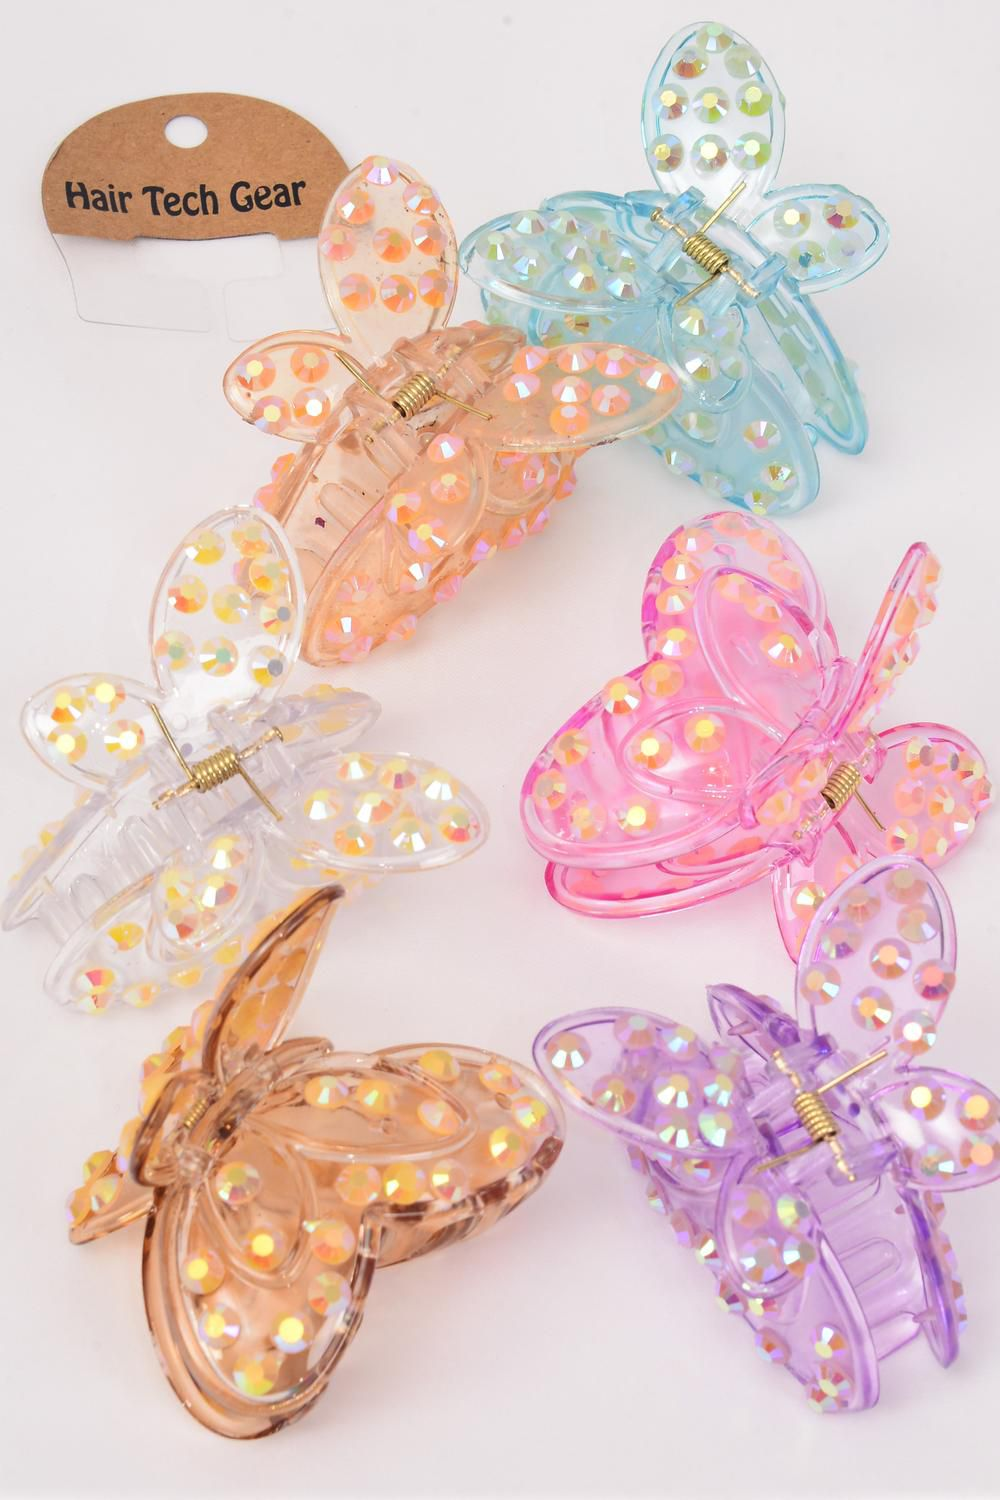 "Jaw Clip Acrylic Butterfly Transparent W AB Stones/DZ Butterfly Size-3.5""x 2.75"" Wide,2 of each Color Asst,Hang Tag & OPP Bag & UPC Code -"